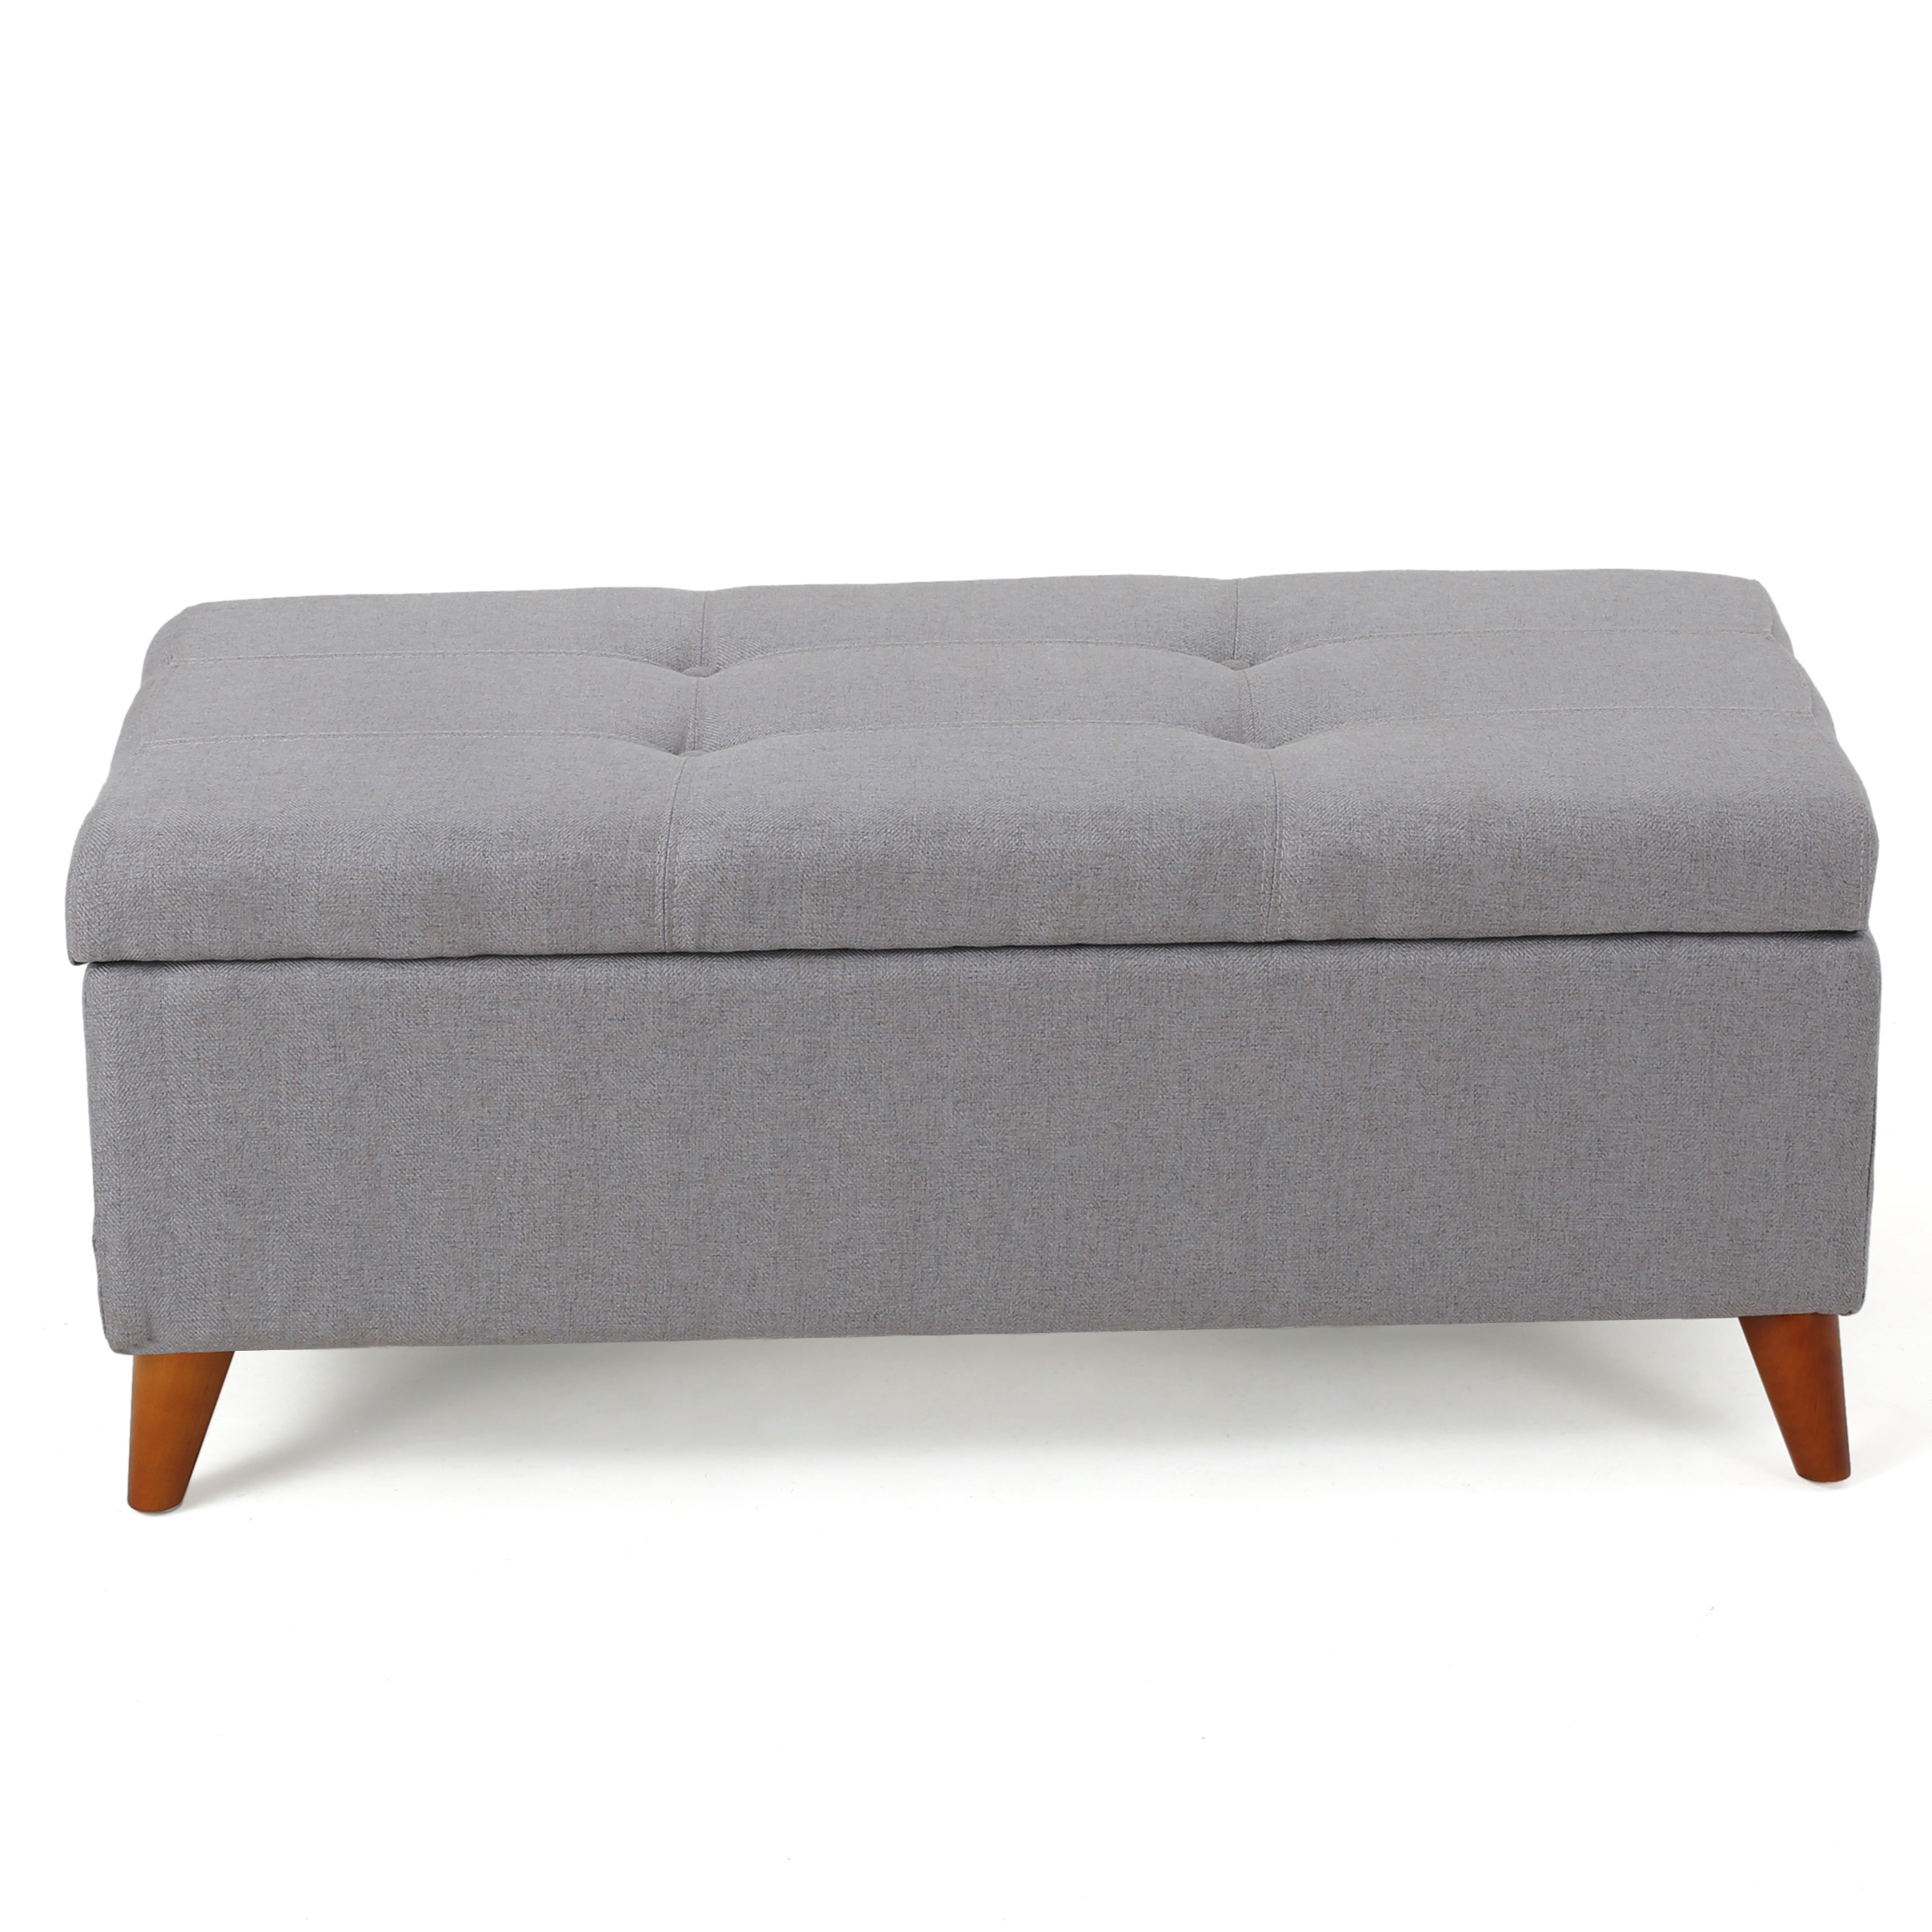 Superb Details About Etoney Mid Century Modern Button Tufted Fabric Storage Ottoman Bench Creativecarmelina Interior Chair Design Creativecarmelinacom